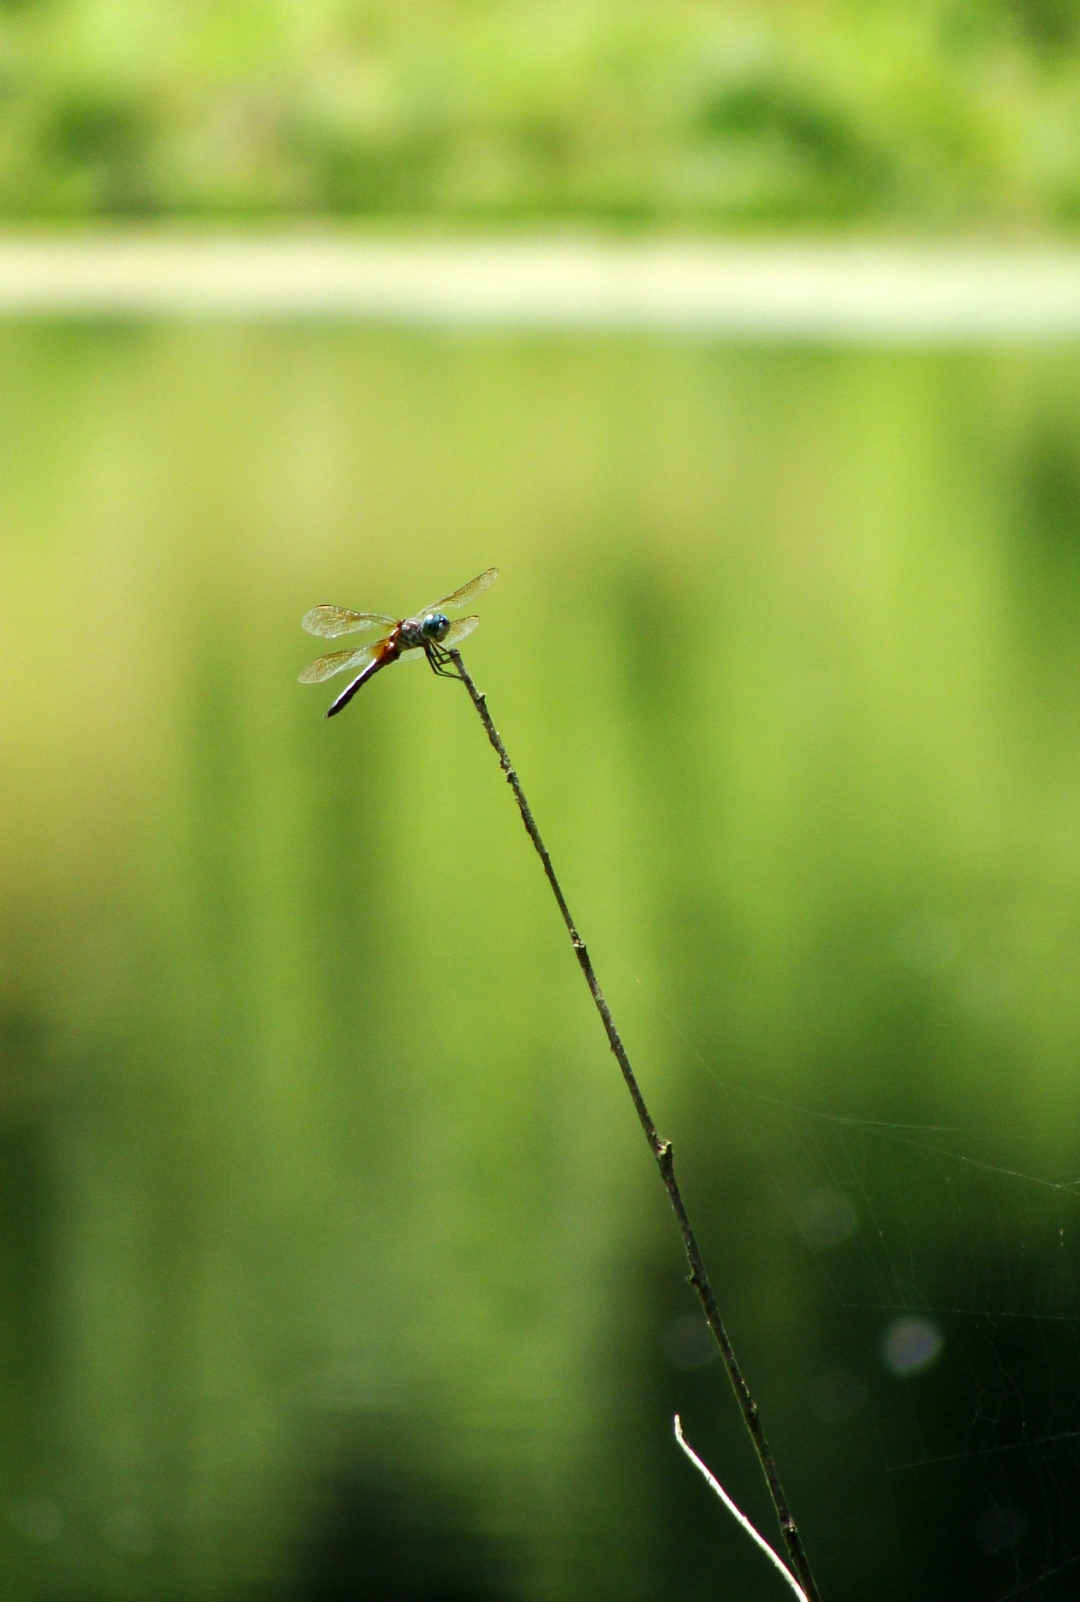 Dragonfly on a stalk.